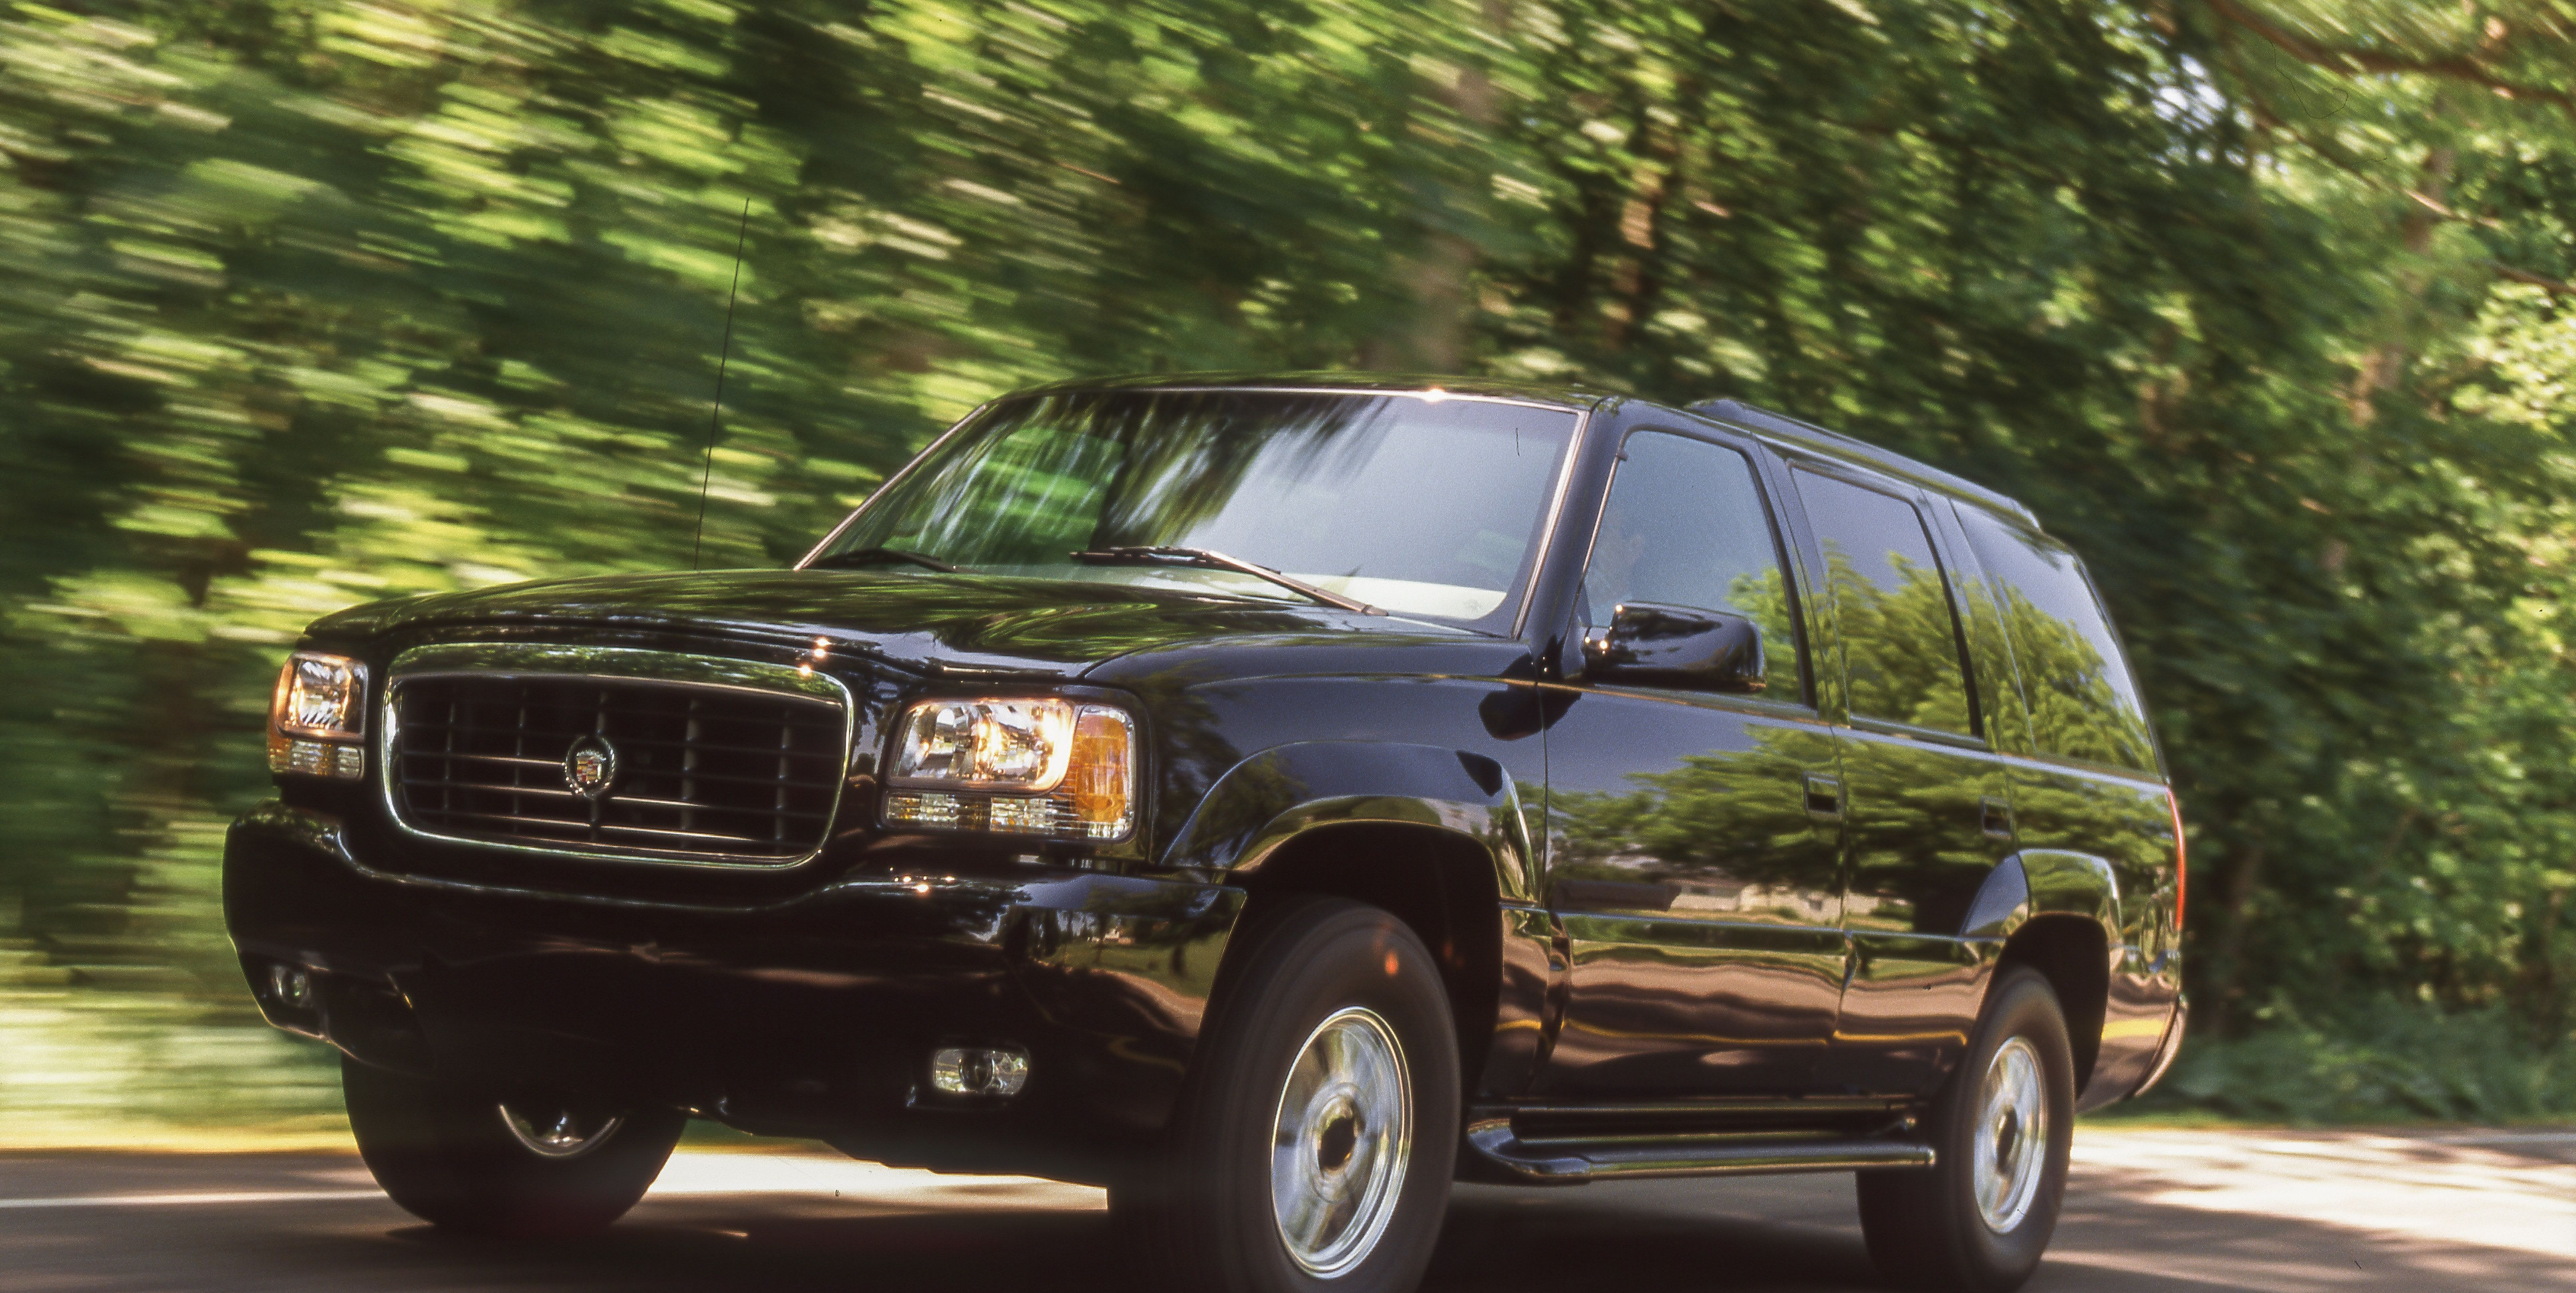 1999 Cadillac Escalade Charges More For a Dressed-Up Chevy Tahoe